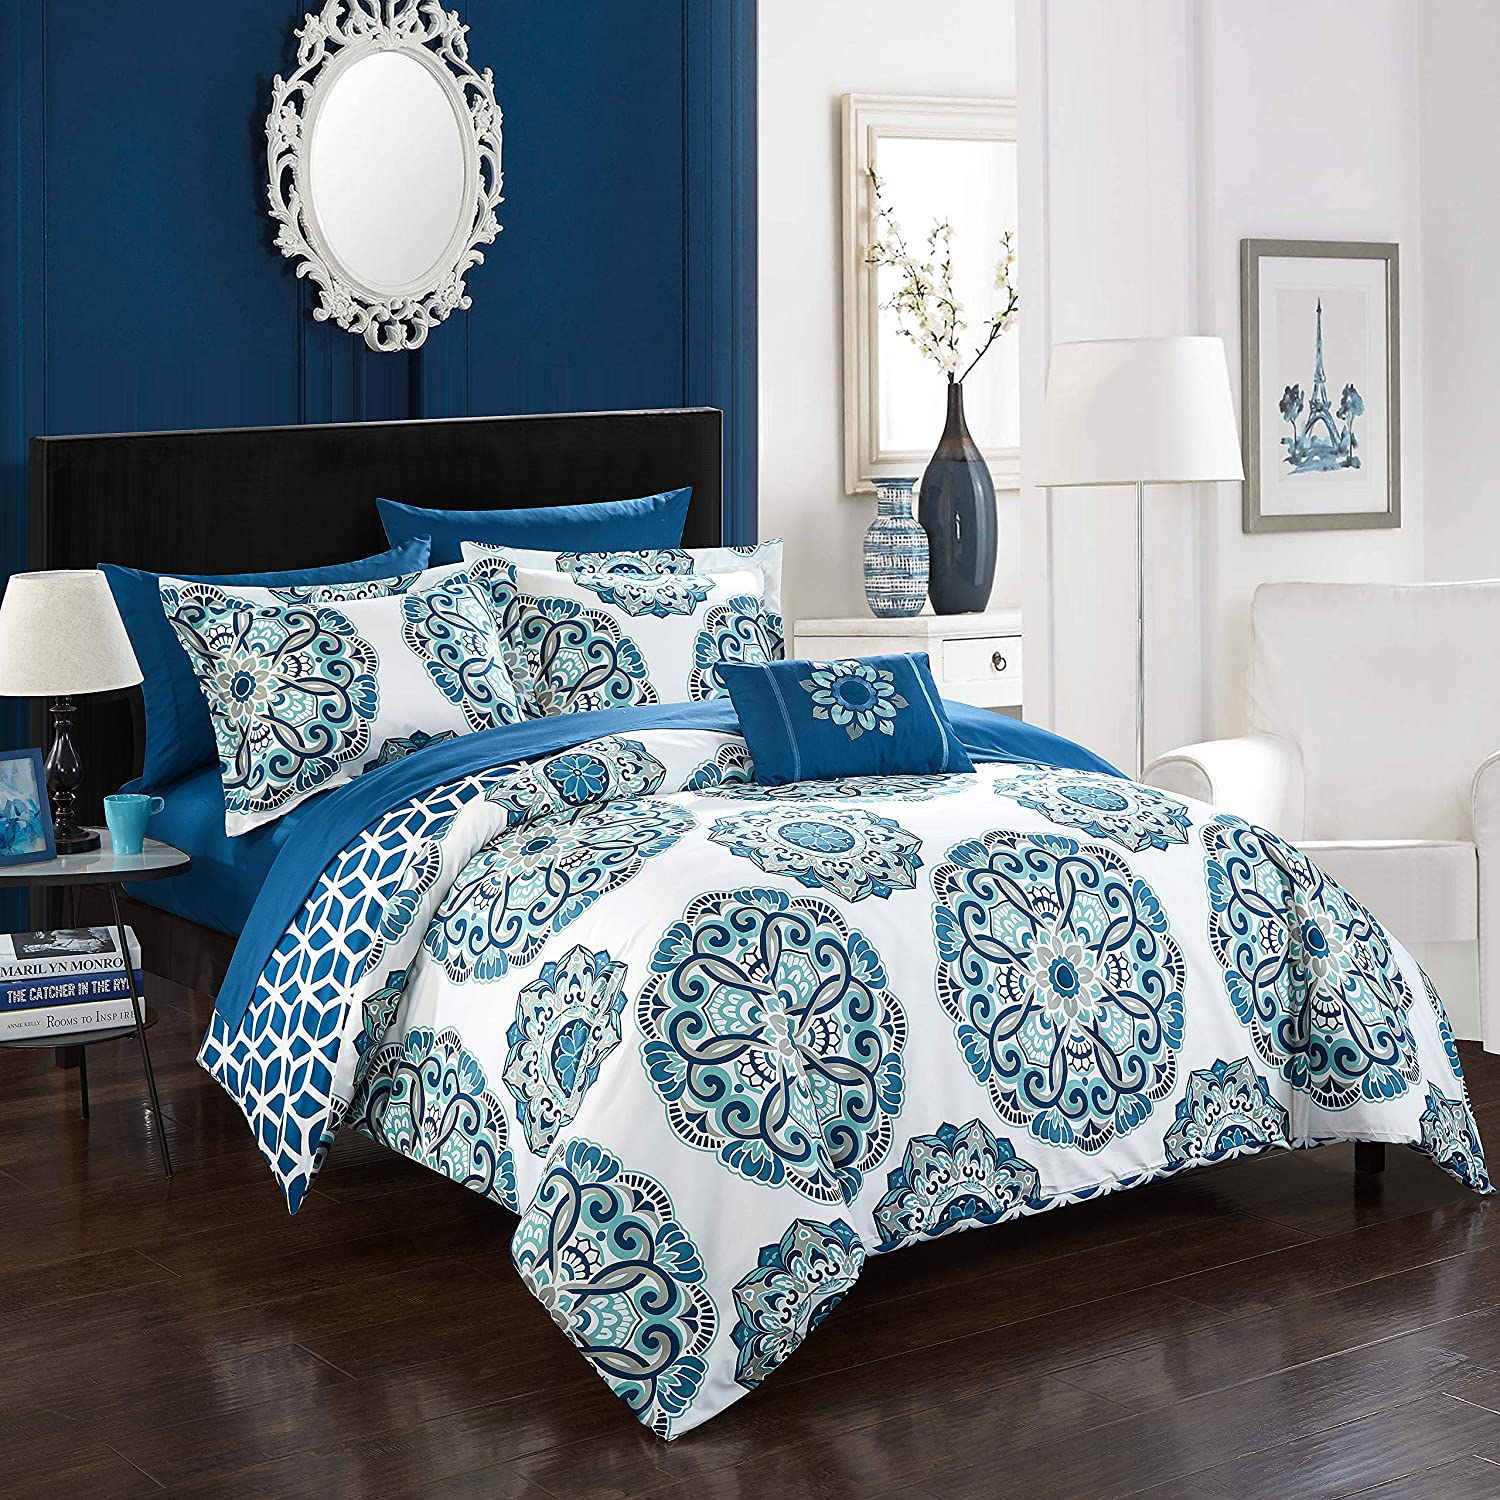 Chic Home Barcelona 8 Piece Reversible Comforter Set, Full/Queen, Blue,